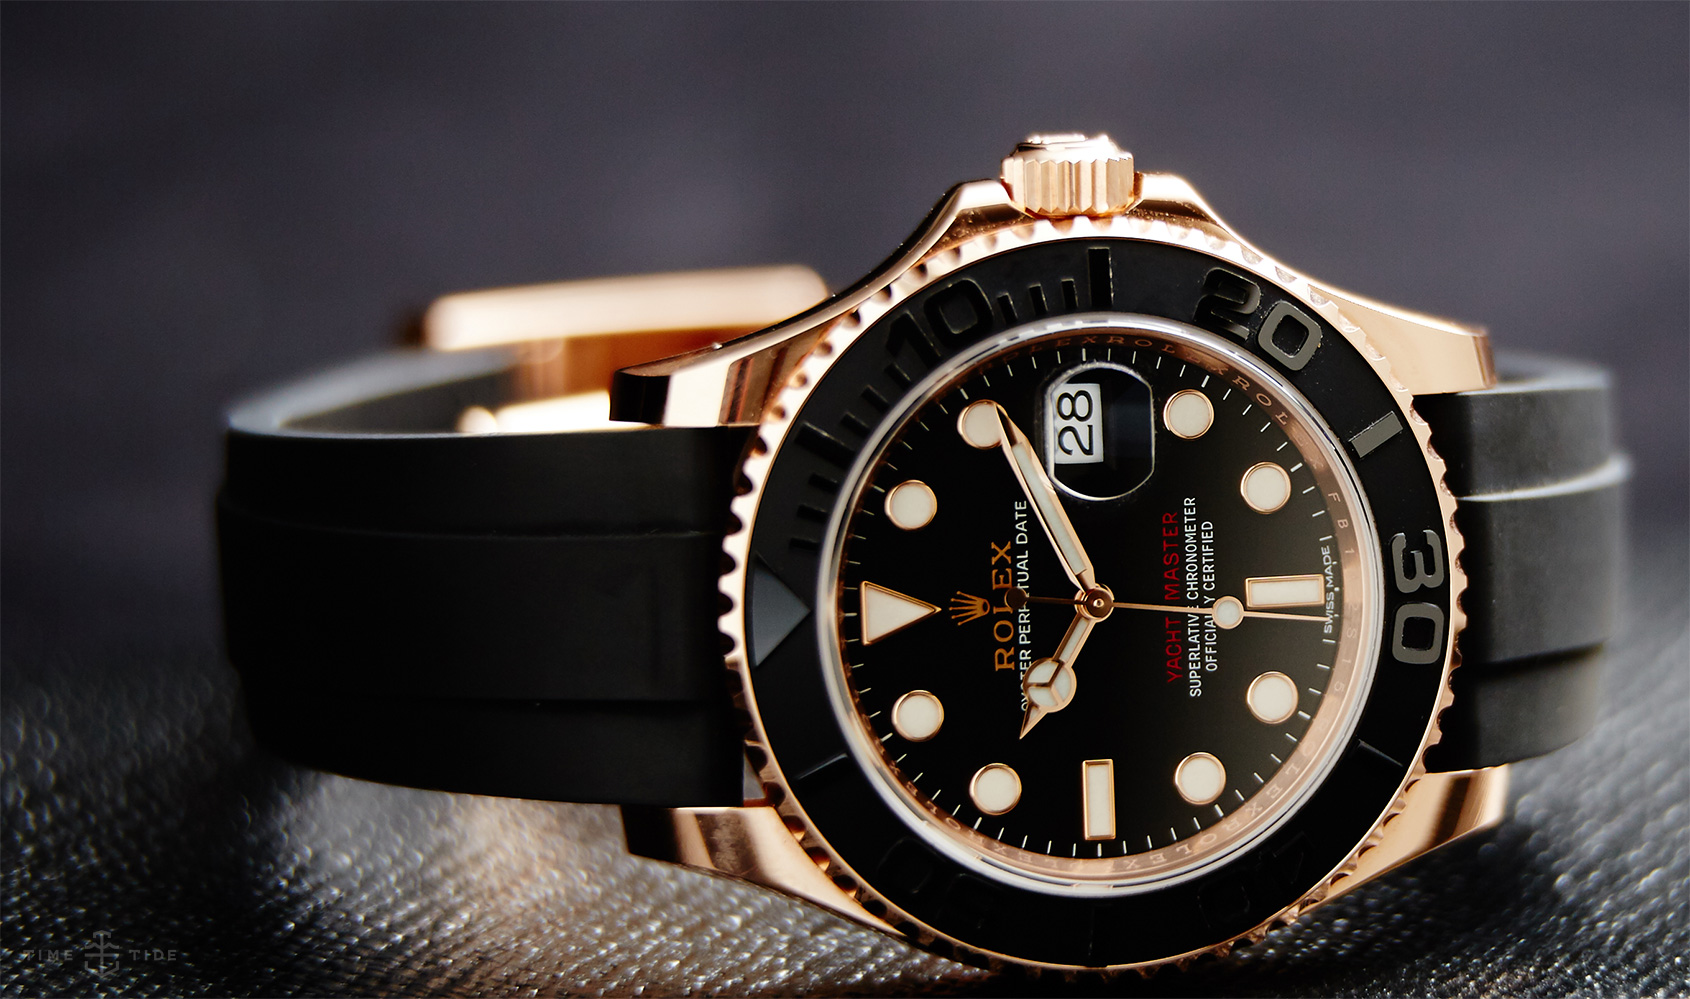 The black Oysterflex strap makes the best copy Rolex more dynamic.